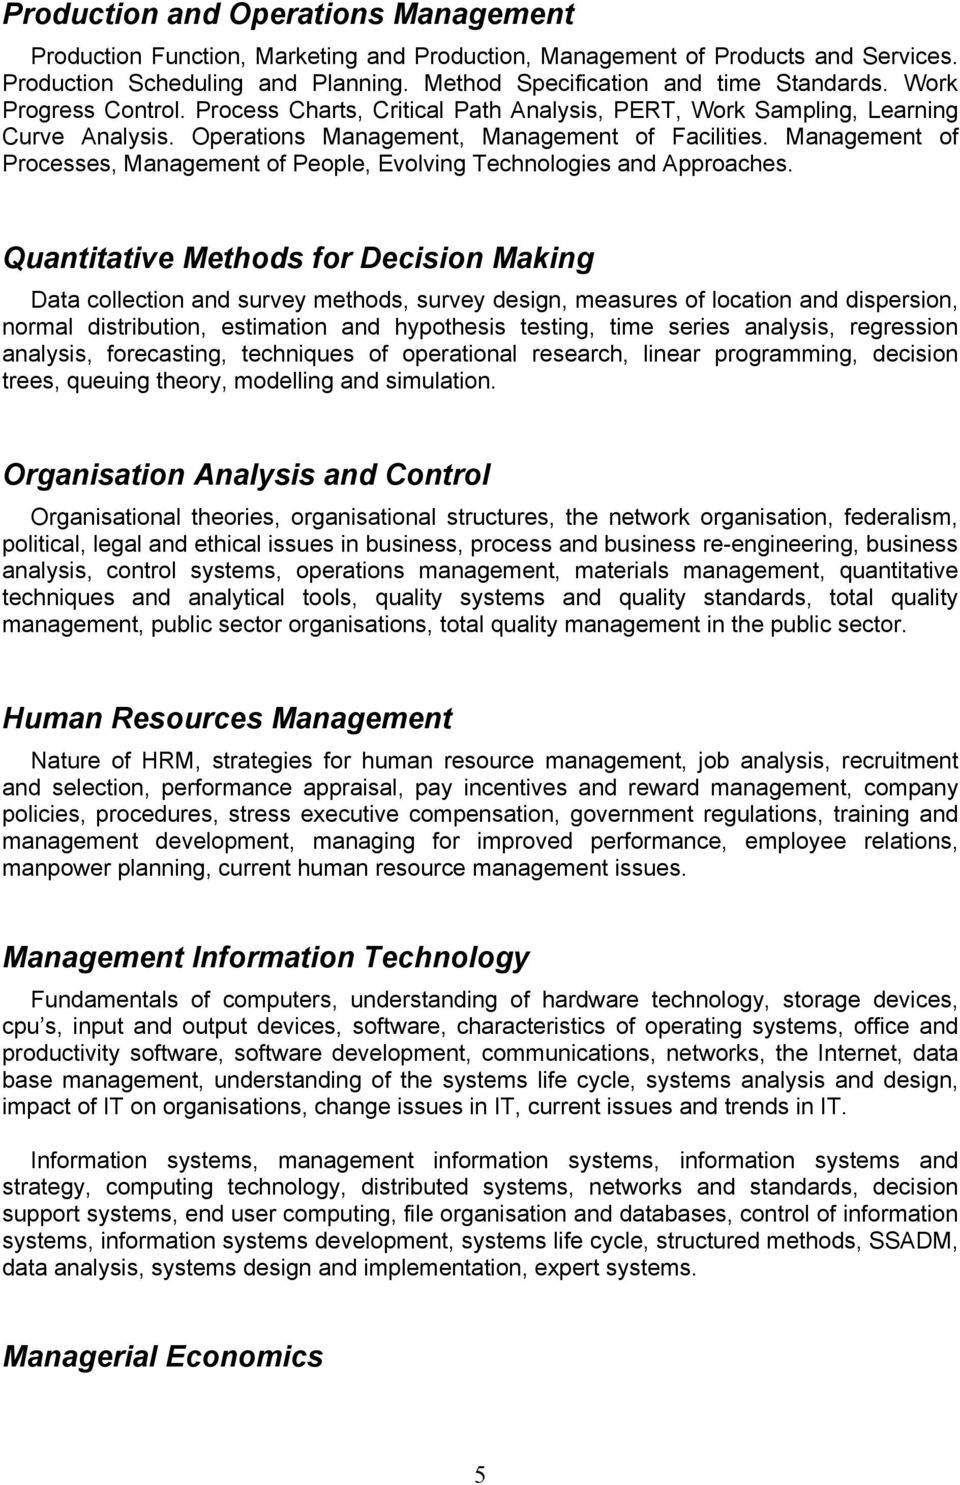 Management of Processes, Management of People, Evolving Technologies and Approaches.